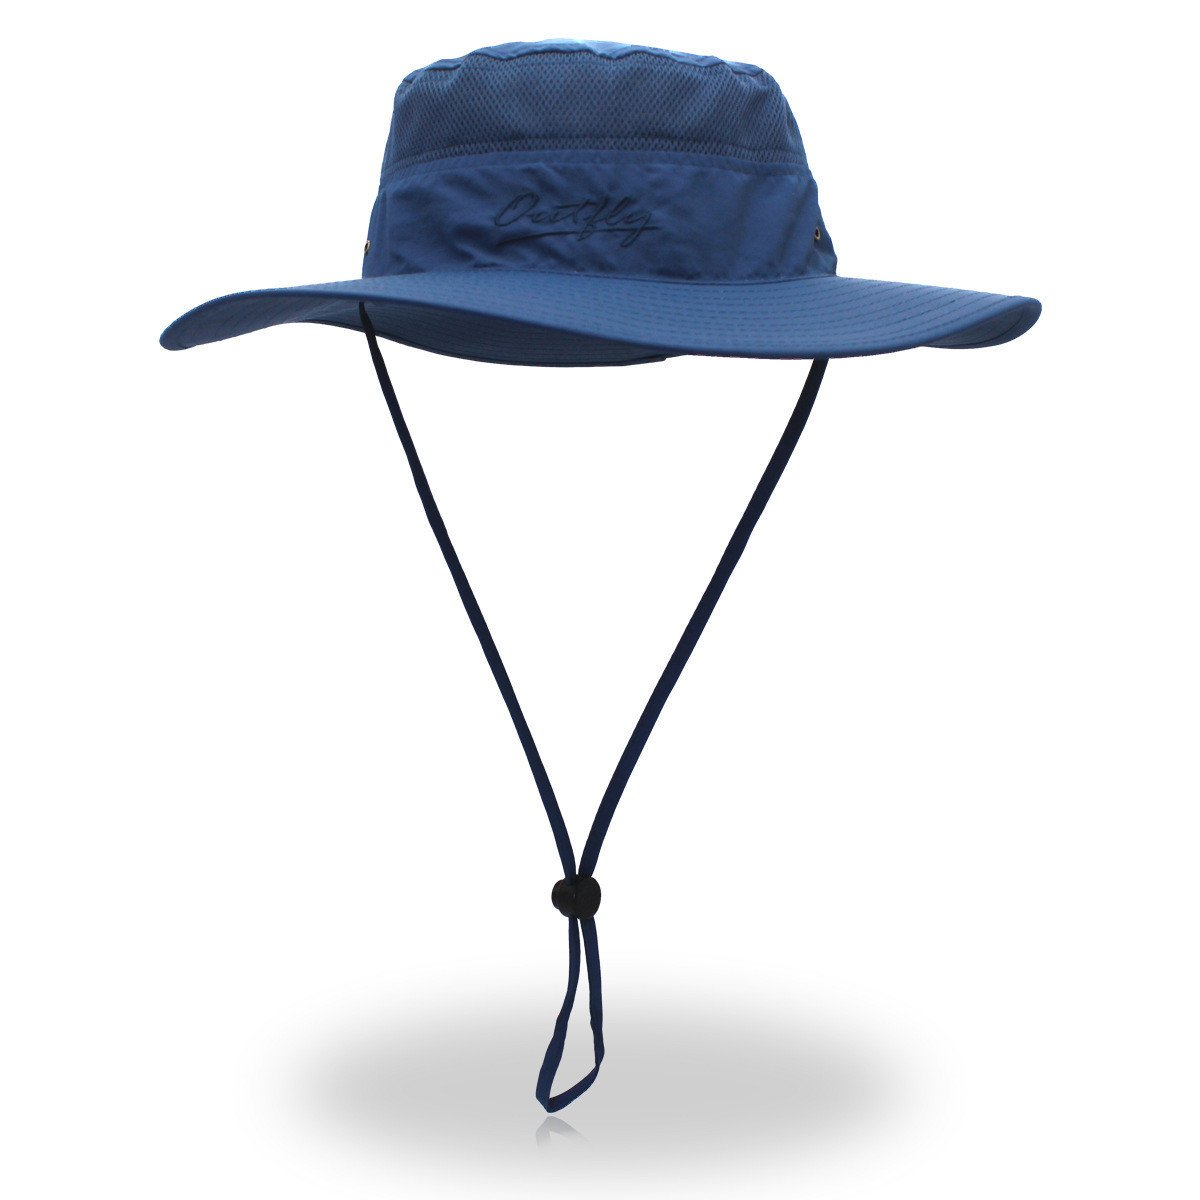 d65b1efcacf Qhome Unisex Outdoor Lightweight Breathable Waterproof Bucket Wide Brim Hat  - UPF 50+ Sun Protection Sun Hats Shade at Amazon Women s Clothing store